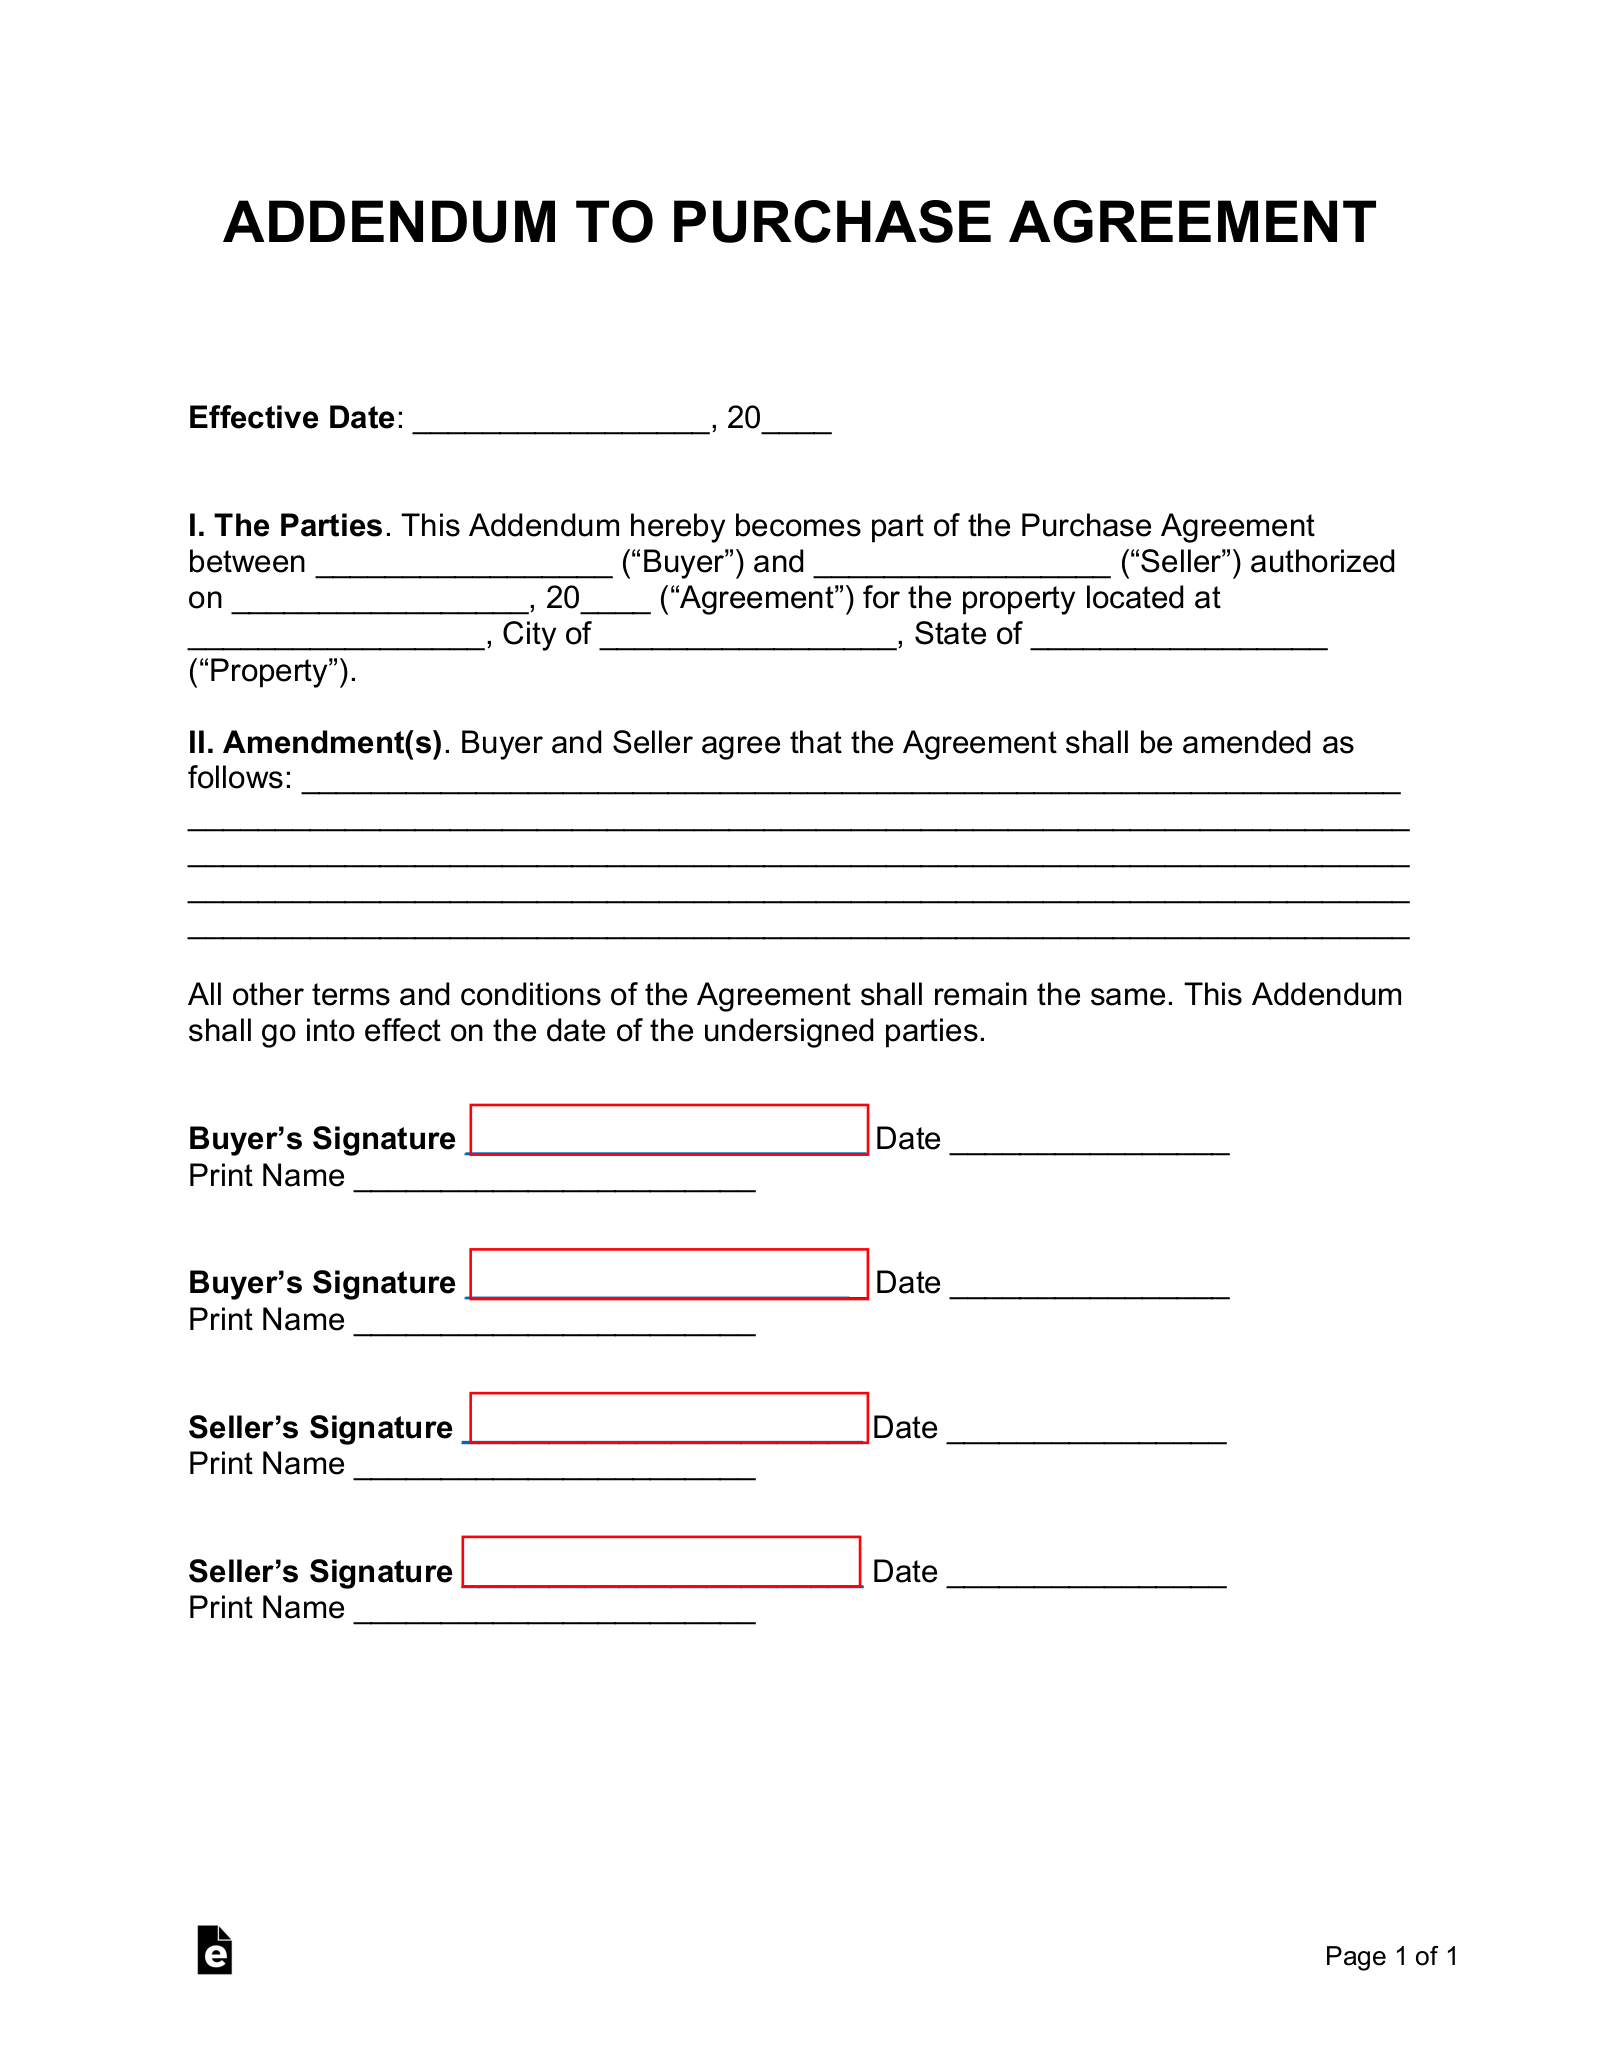 Free Purchase Agreement Addendum Disclosures Word Pdf Eforms